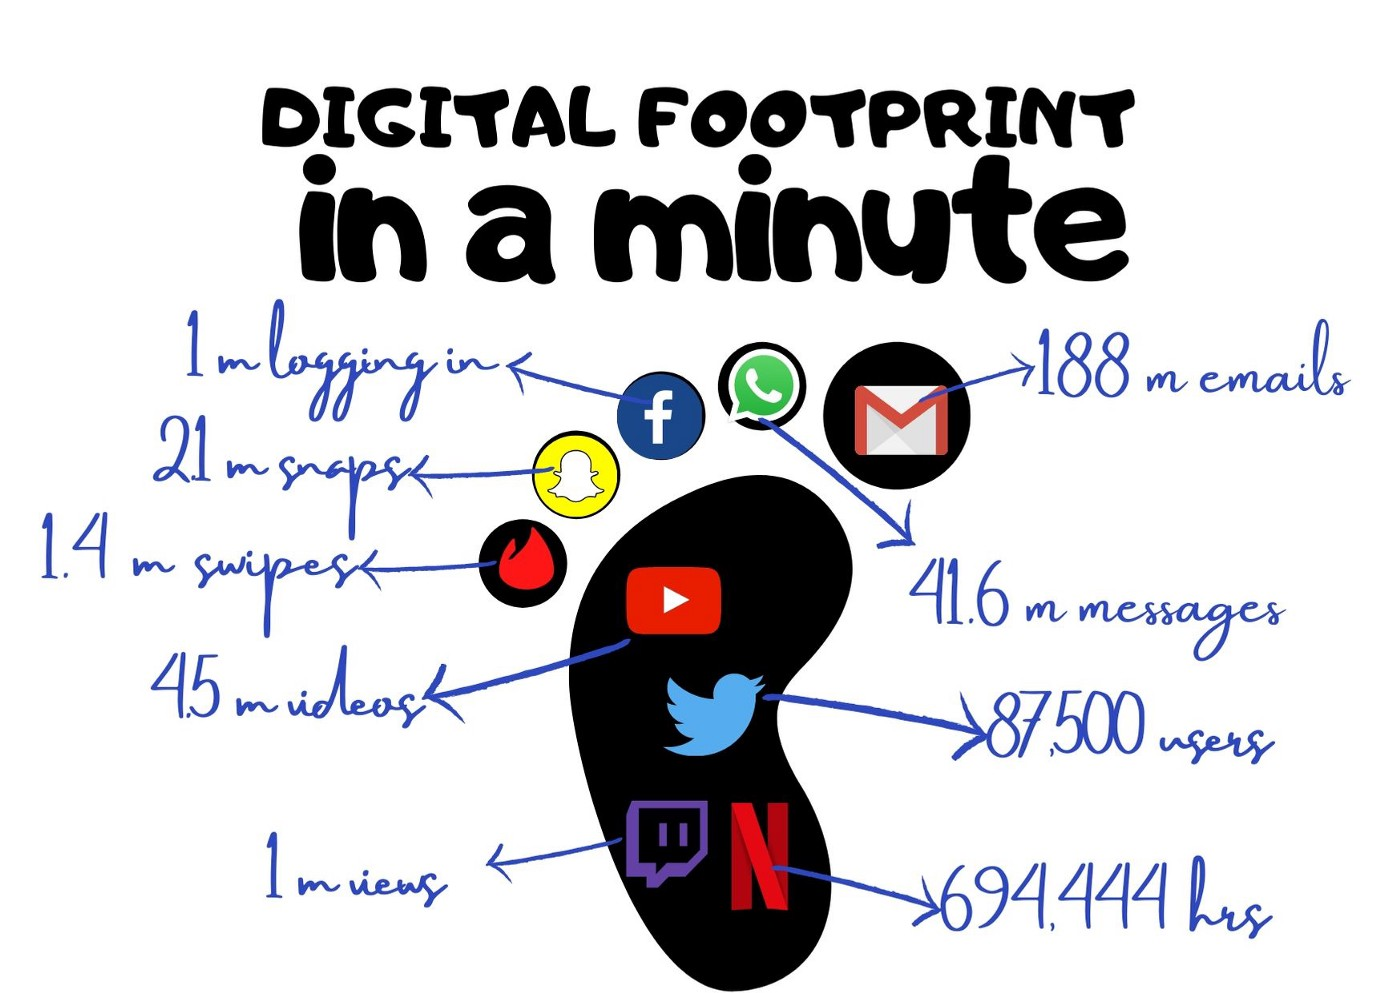 Image of a foot with data of different social media per minute consumption